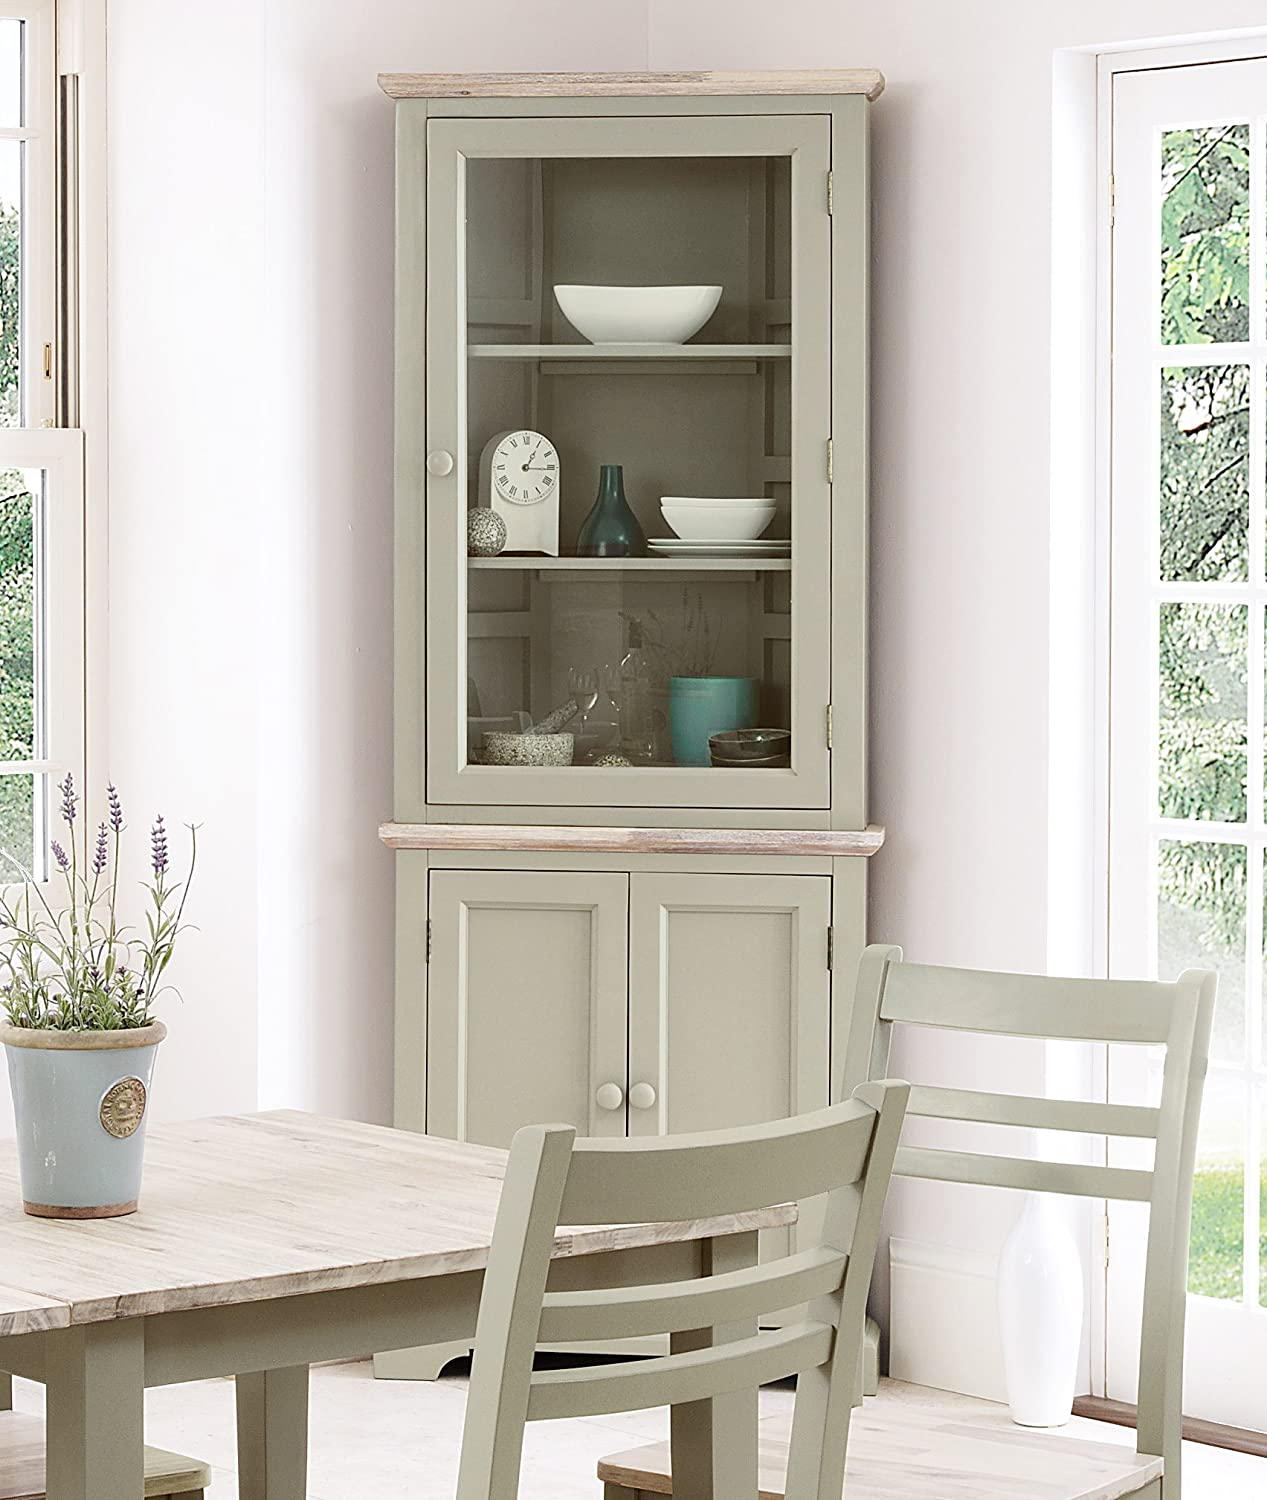 Florence Corner Display Cabinet Dresser Large With Shelf And Glass Door In Sage Green Colour QUALITY Kitchen Furniture Amazoncouk